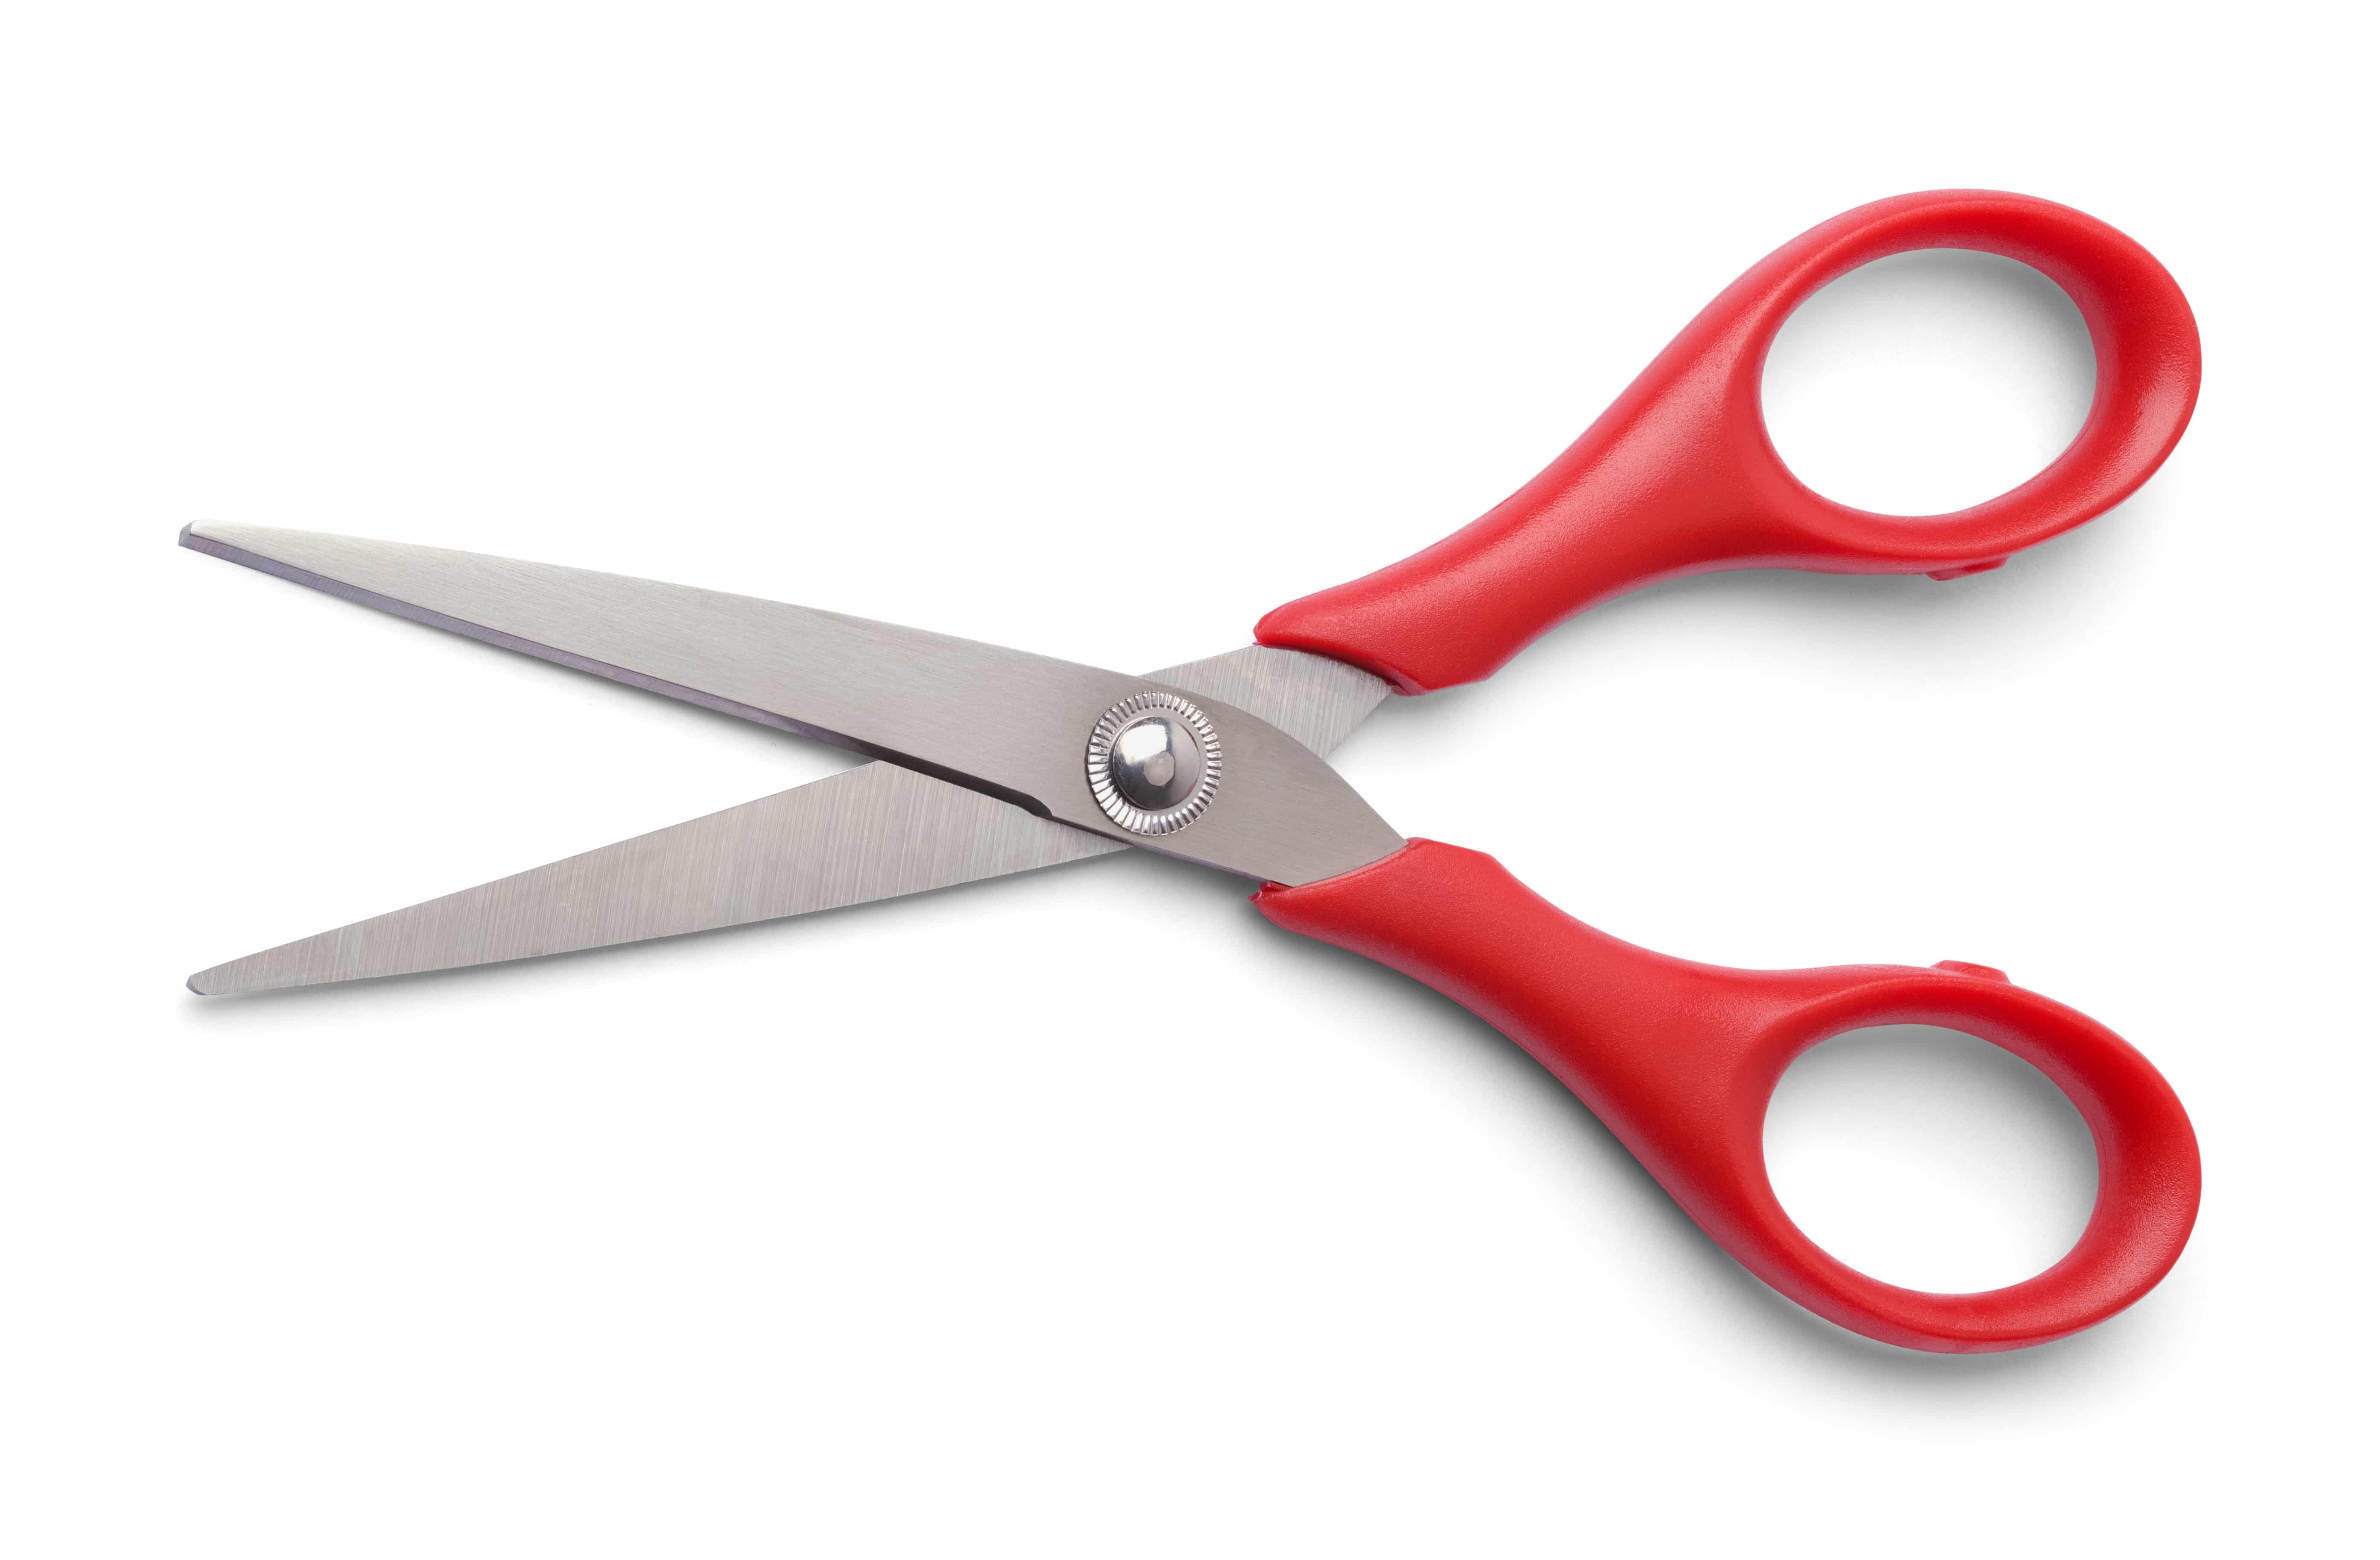 Pair of Red Scissors Open Isolated on White.